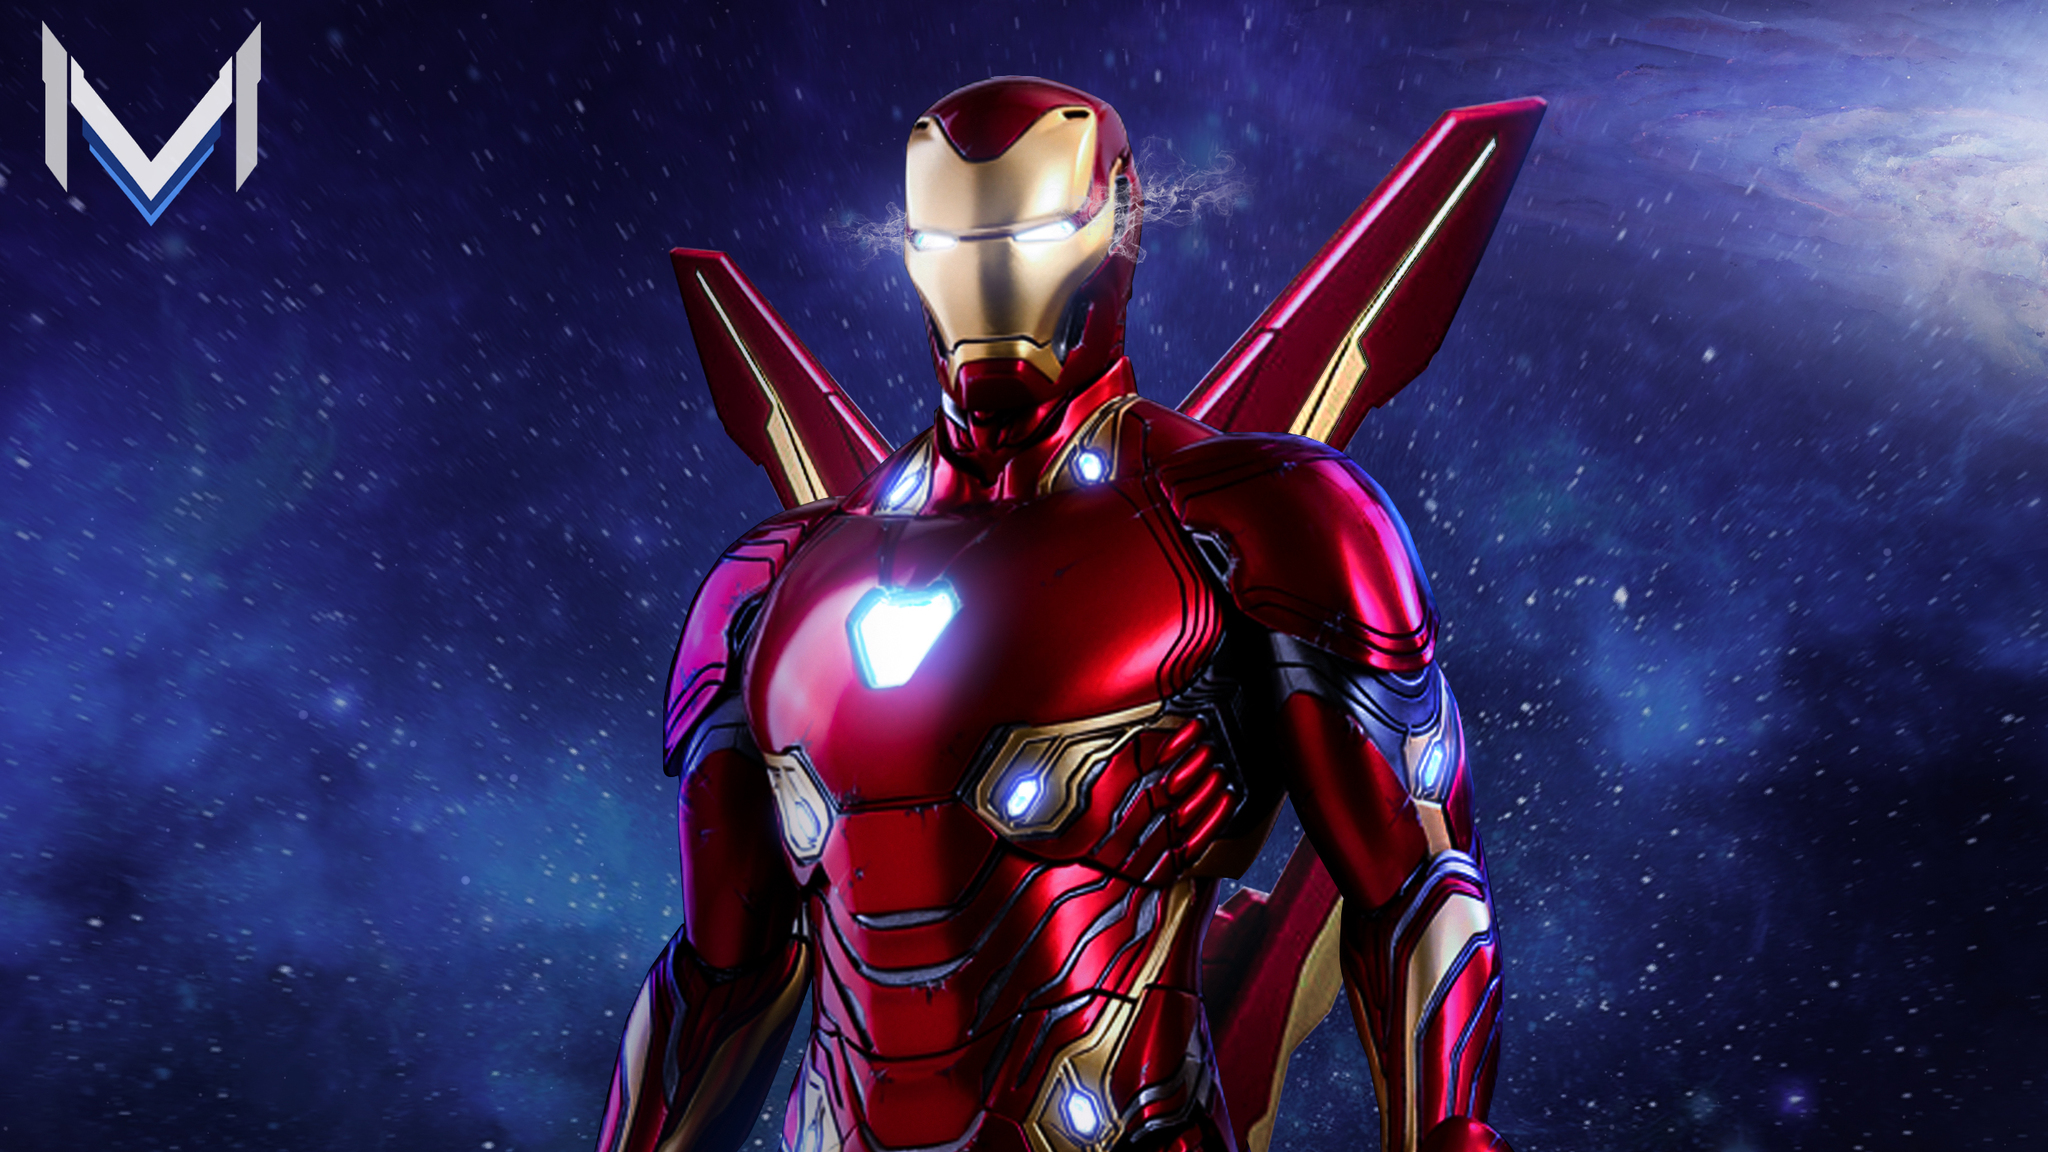 Iron Man Avengers Infinity War Suit Artwork 67